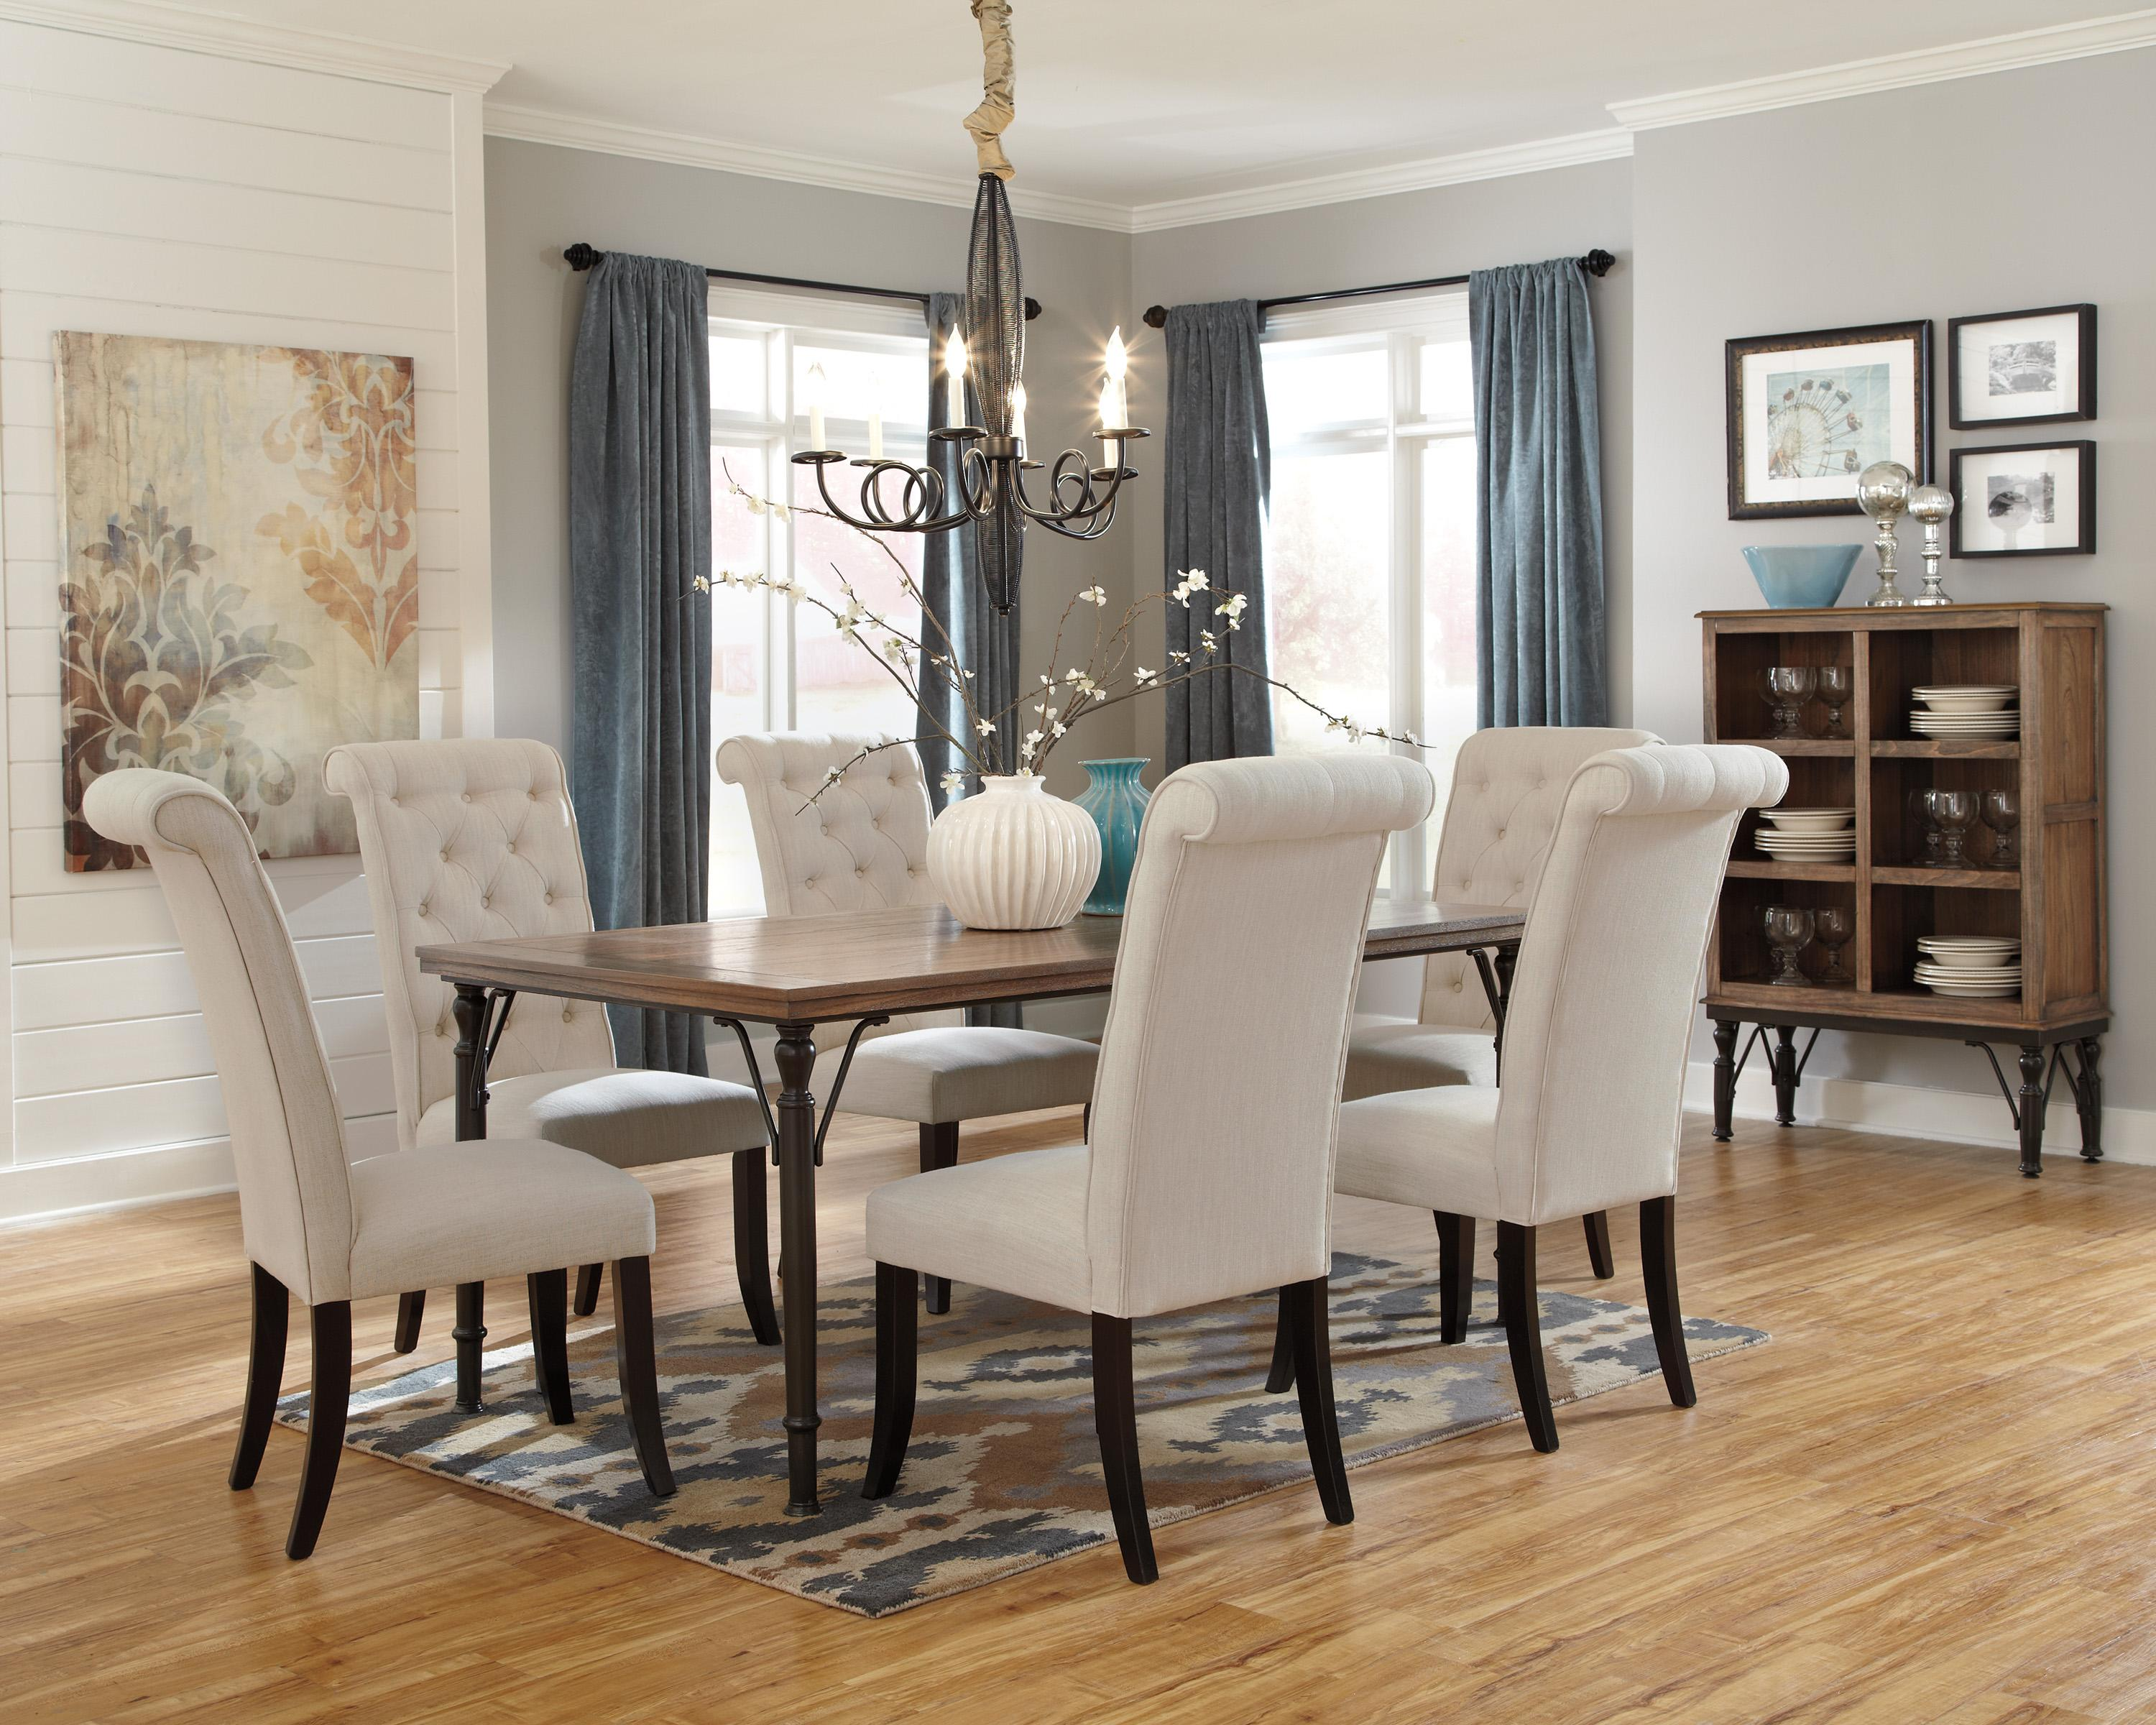 Ashley dining room furniture - Signature Design By Ashley Furniture Tripton 5 Piece Rectangular Dining Room Table Set W Wood Top Metal Legs Sam S Appliance Furniture Dining 5